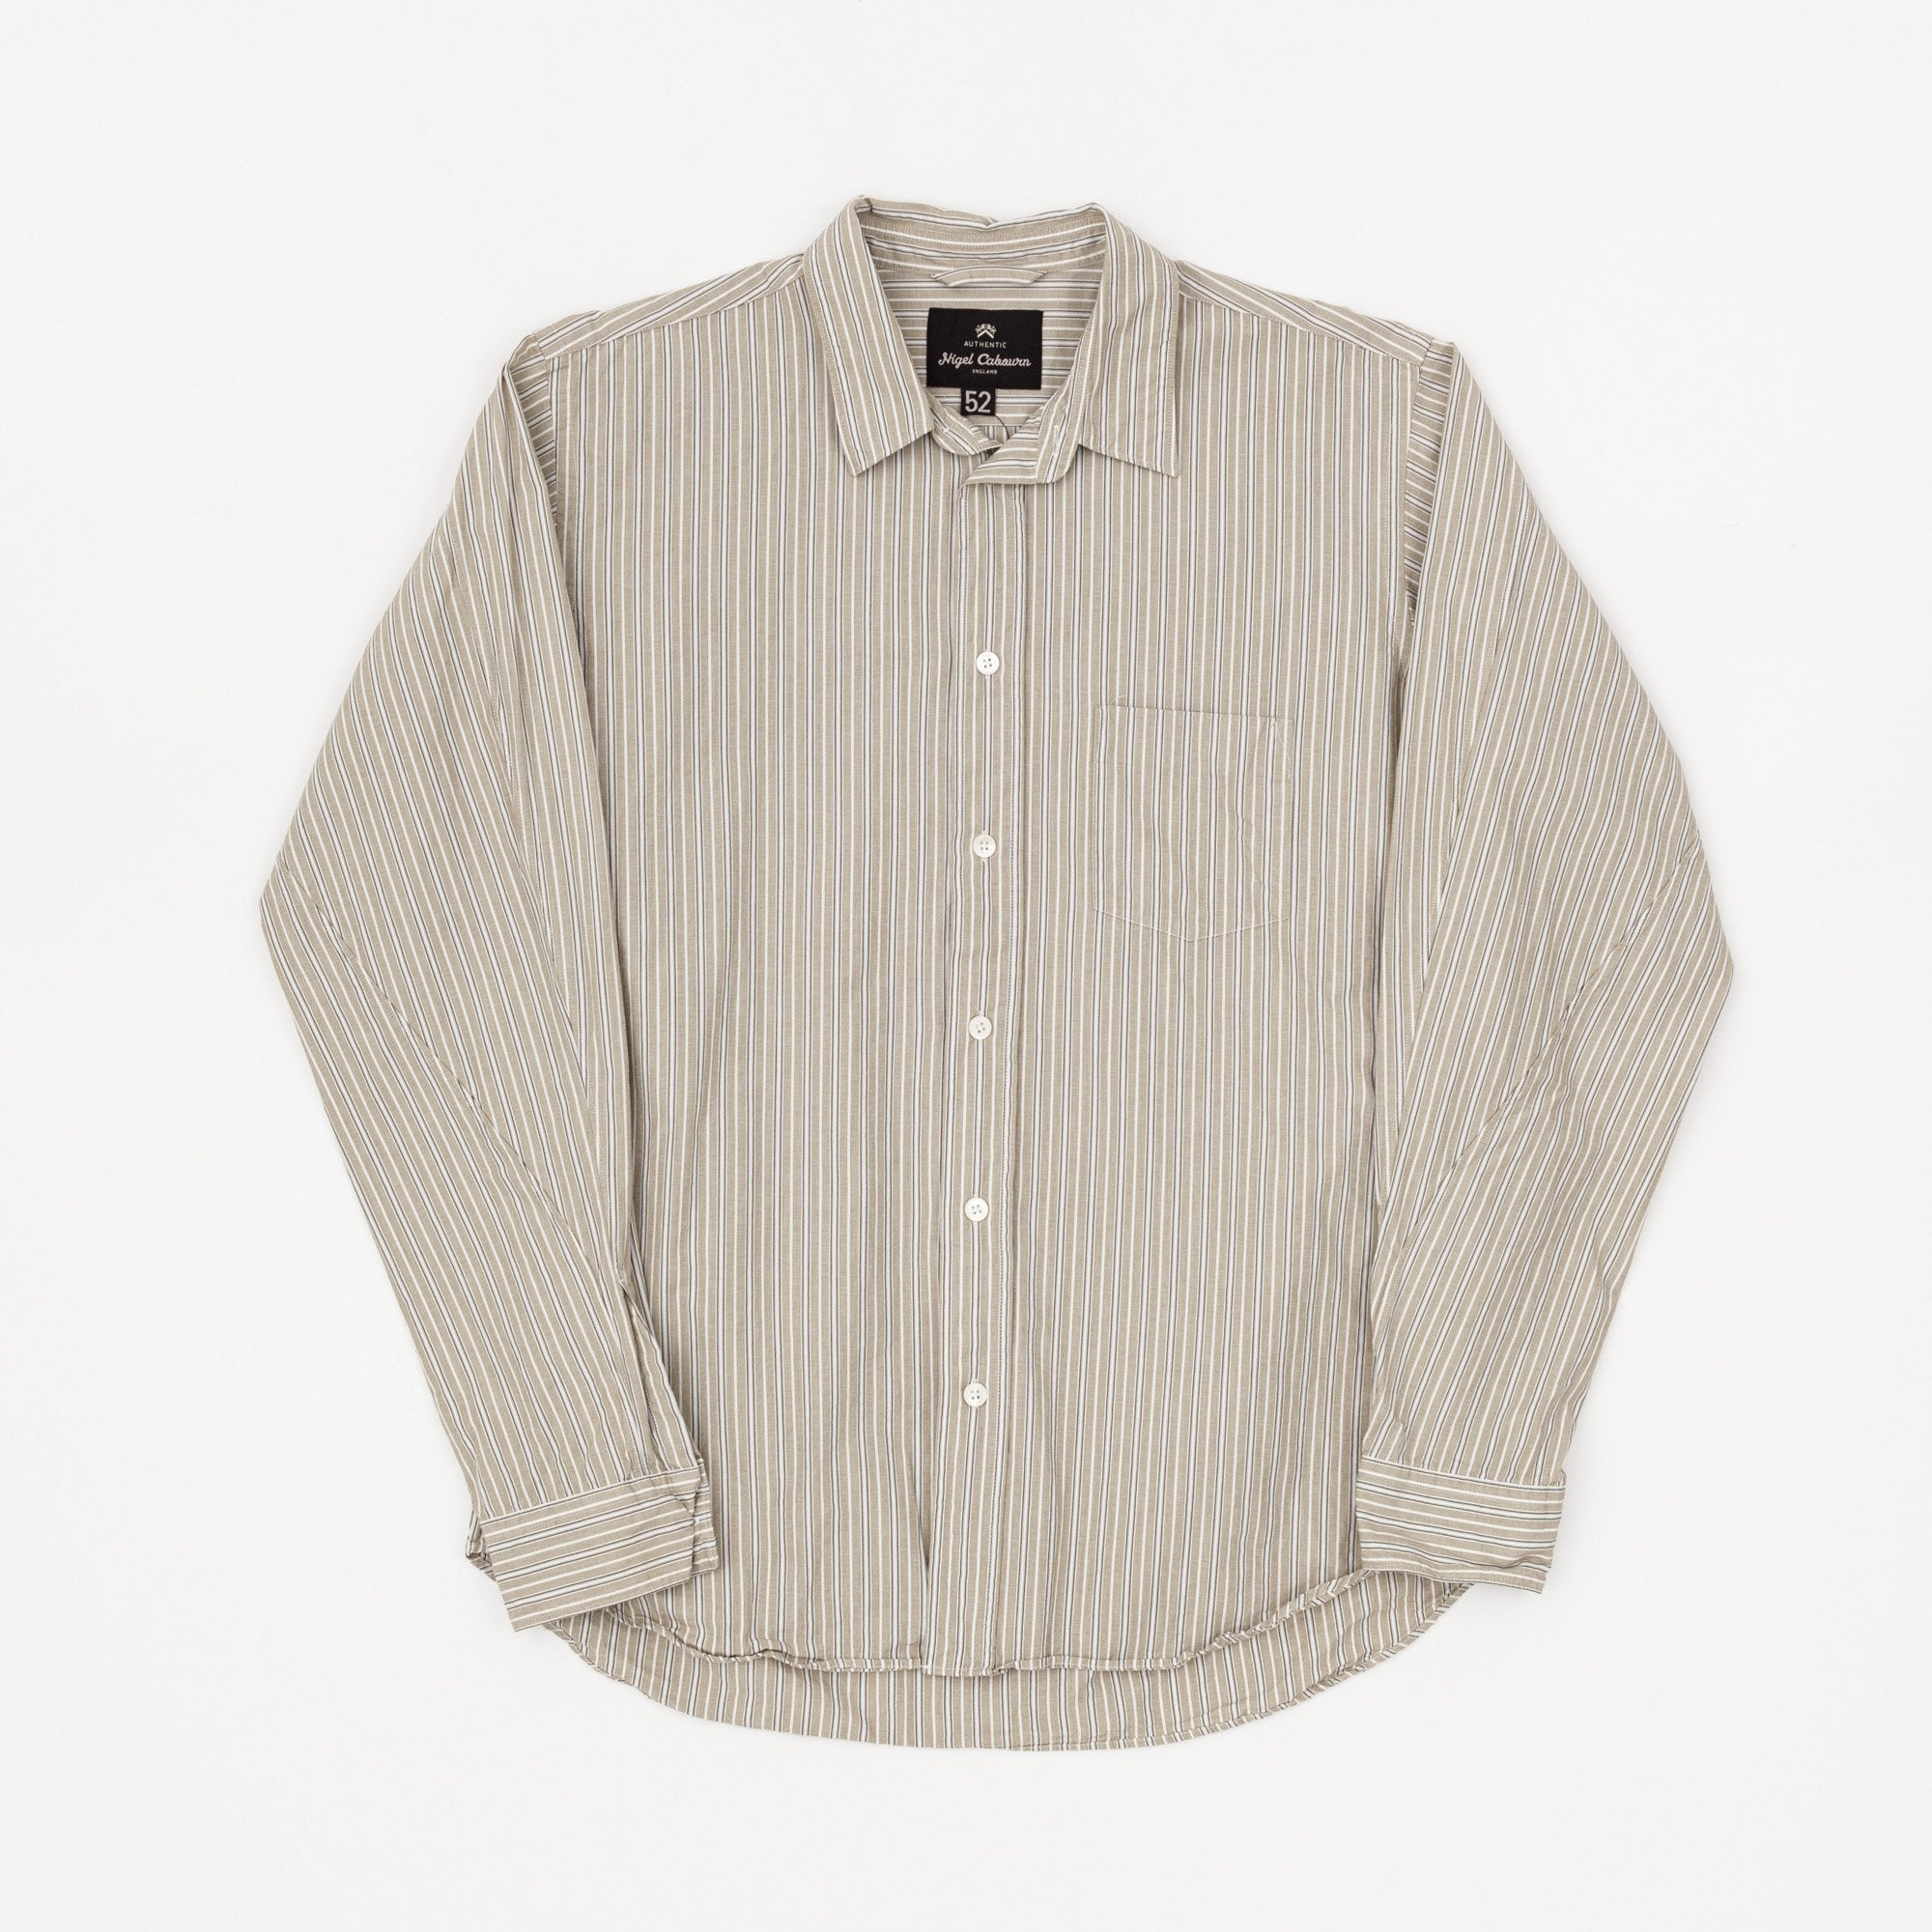 Nigel Cabourn Stripe Dress Shirt